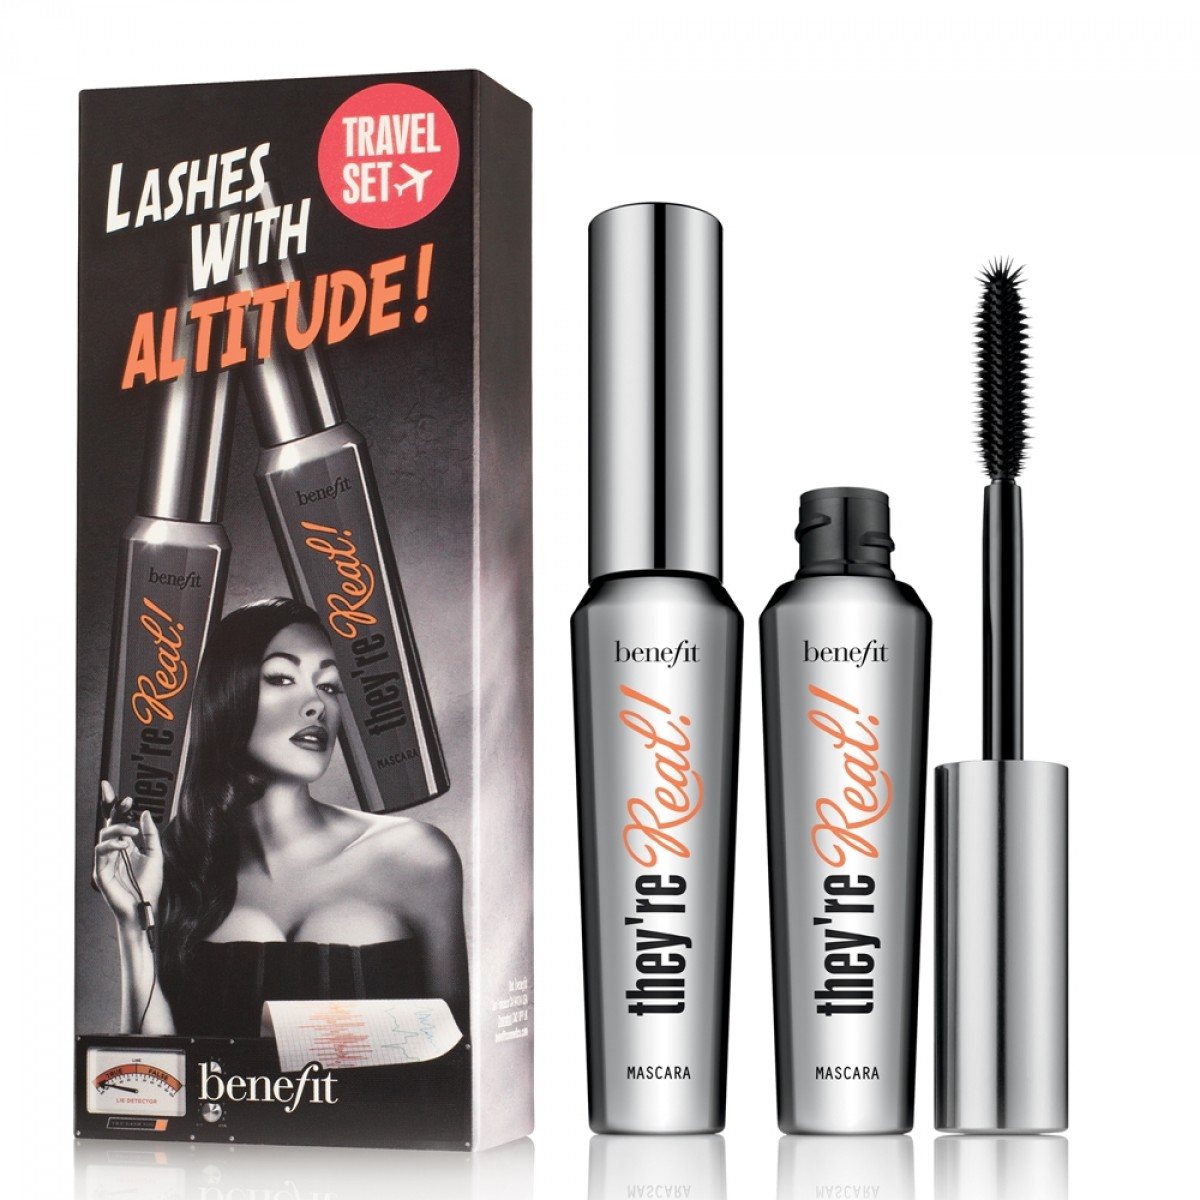 Benefit Cosmetics Lashes with Altitude!